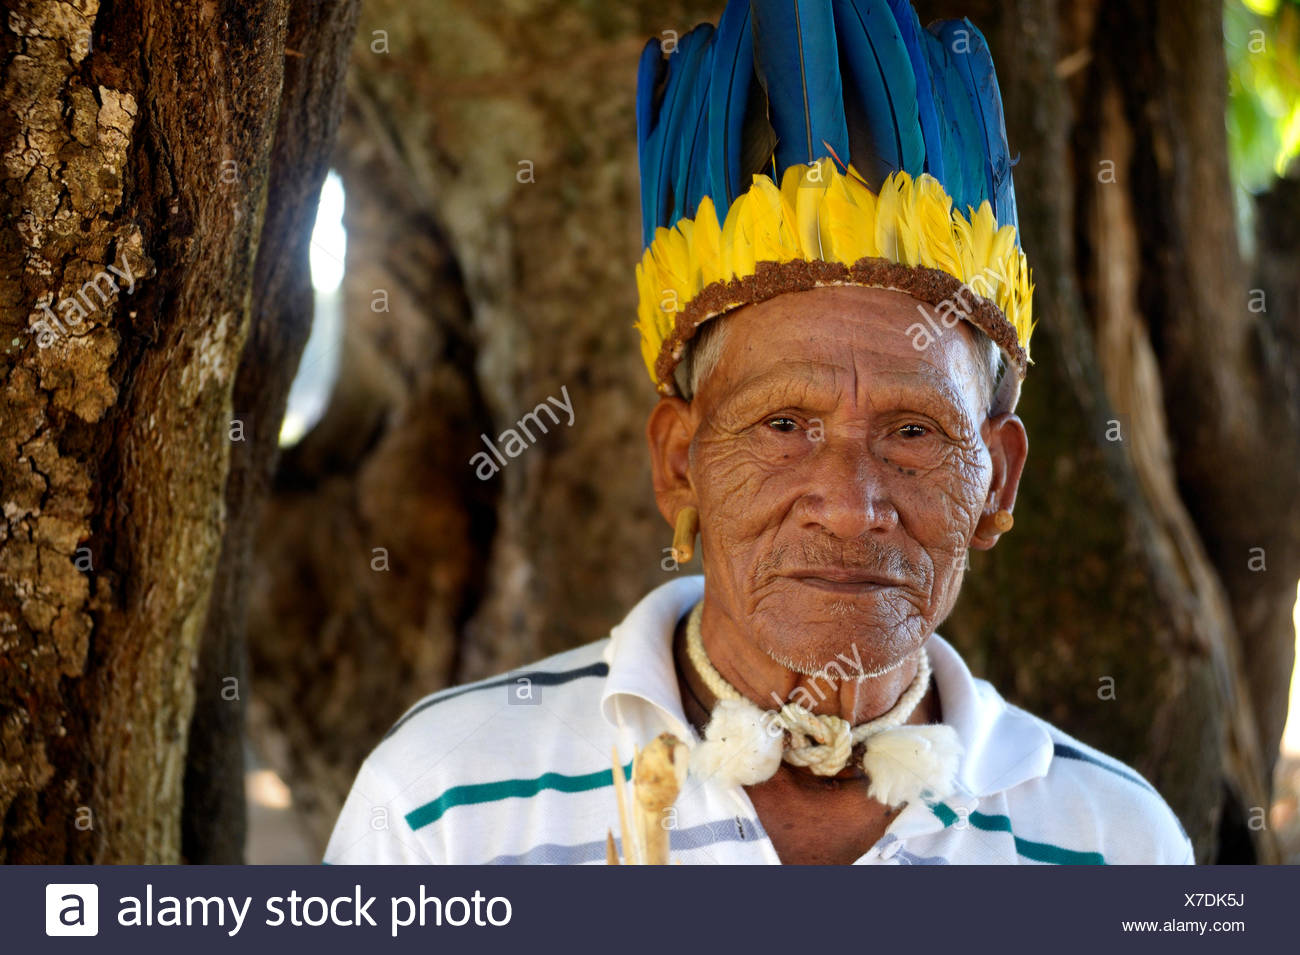 Cacique of the Xavante people, indigenous tribe, with the headdress of a chief, Primavera do Leste, Mato Grosso, Brazil - Stock Image